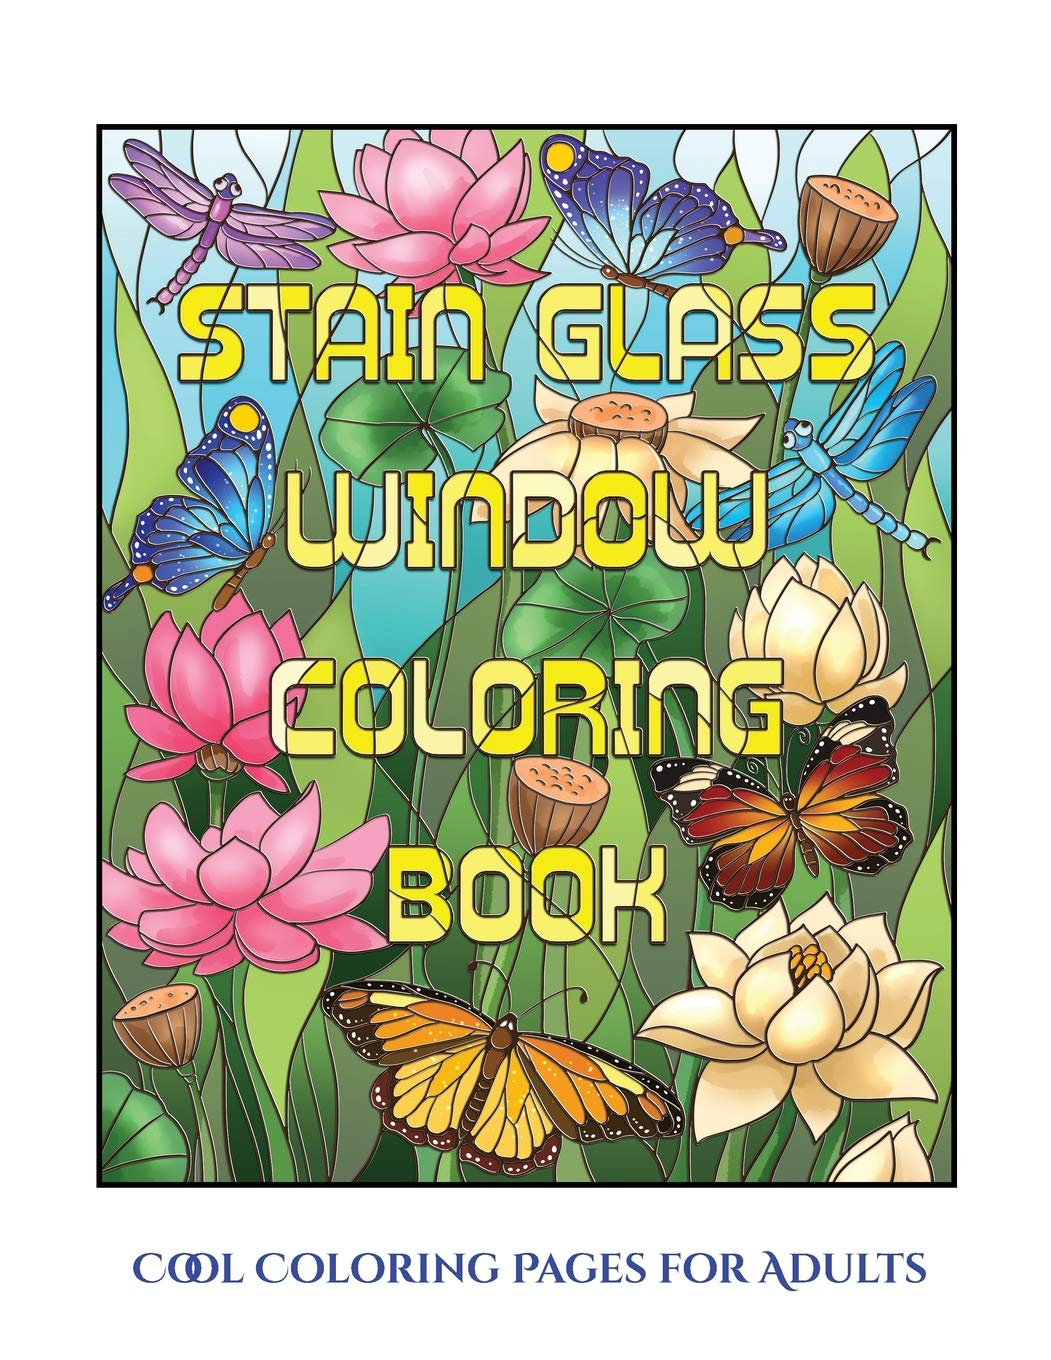 - Amazon.com: Cool Coloring Pages For Adults (Stain Glass Window